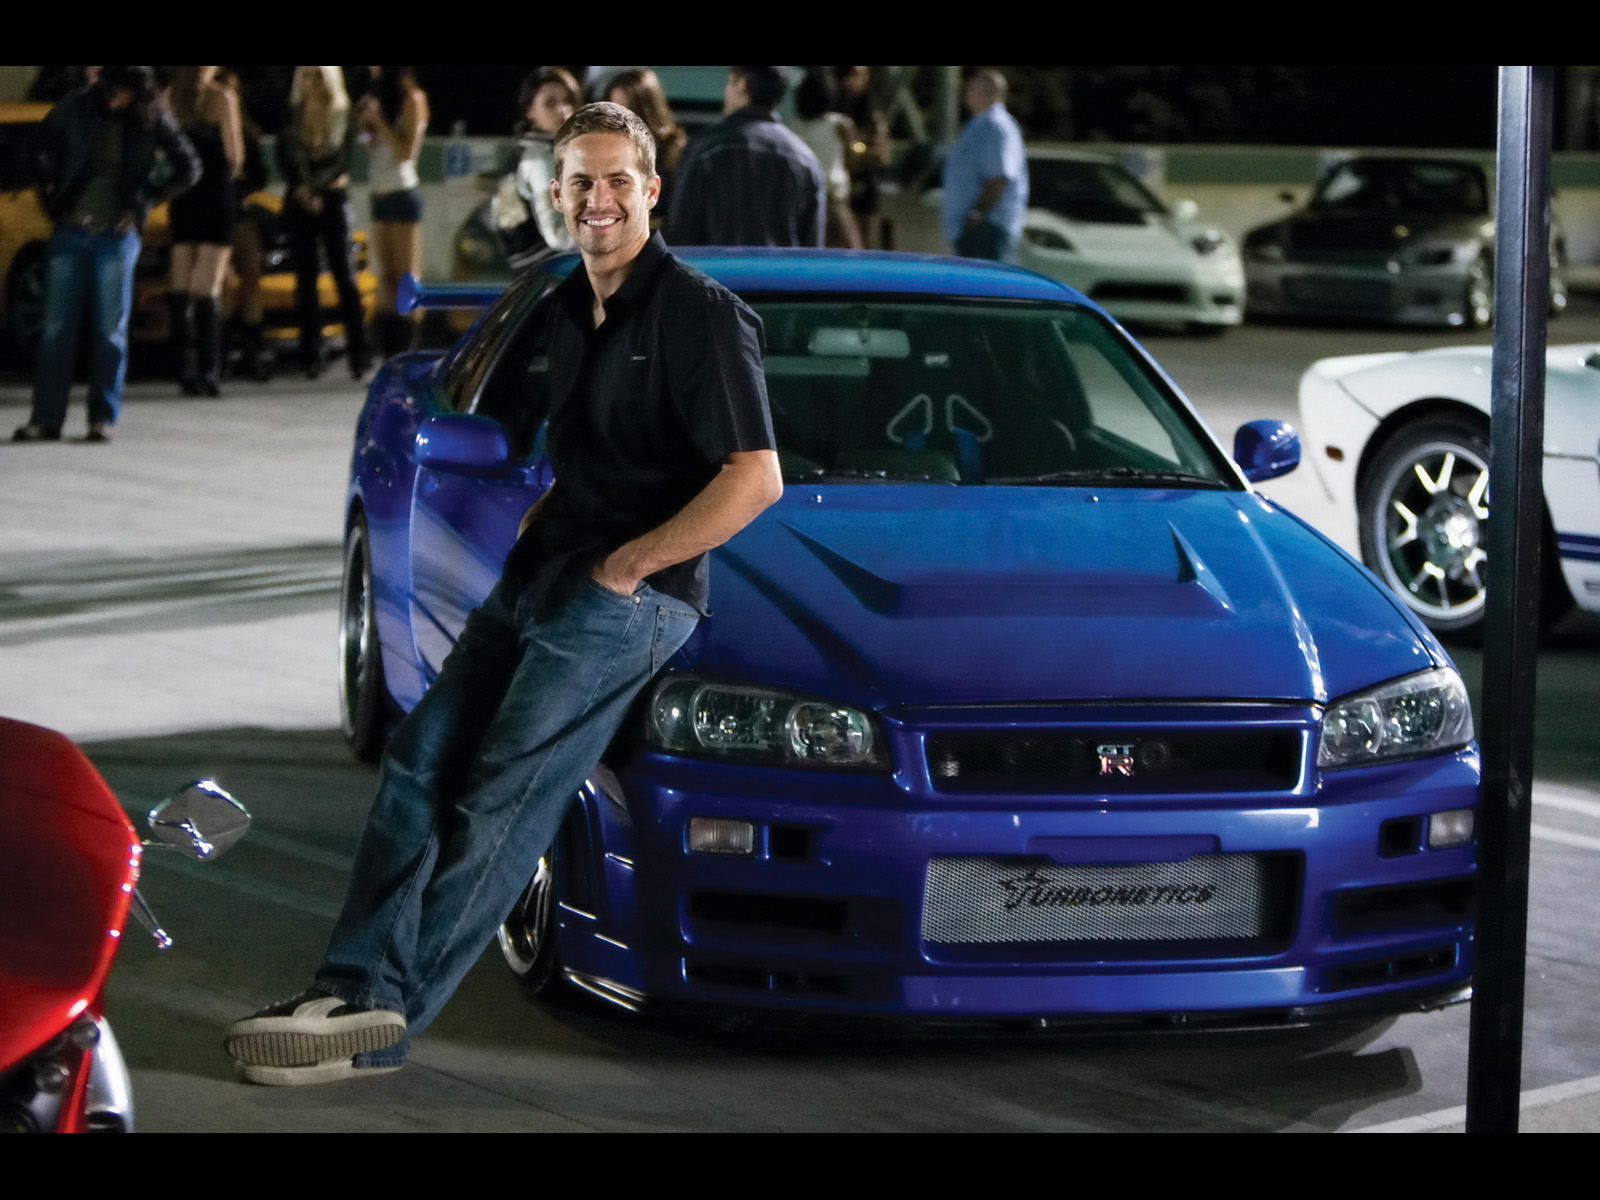 Cheap Insurance Companies >> Nissan skyline fast and furious 4 |Cars Wallpapers And Pictures car images,car pics,carPicture